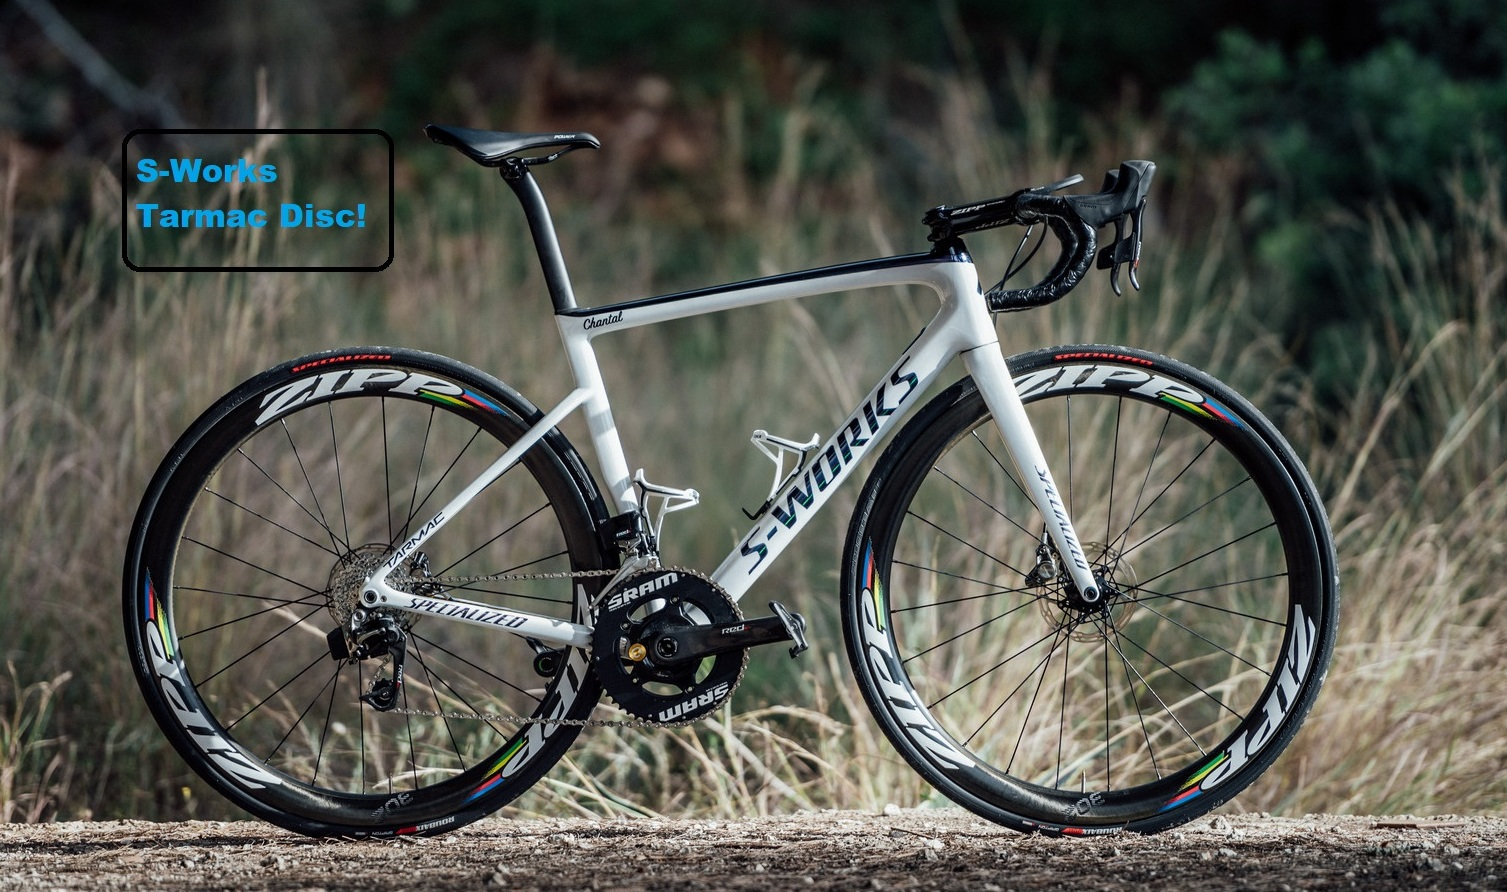 2019 S-Works Tarmac Disc